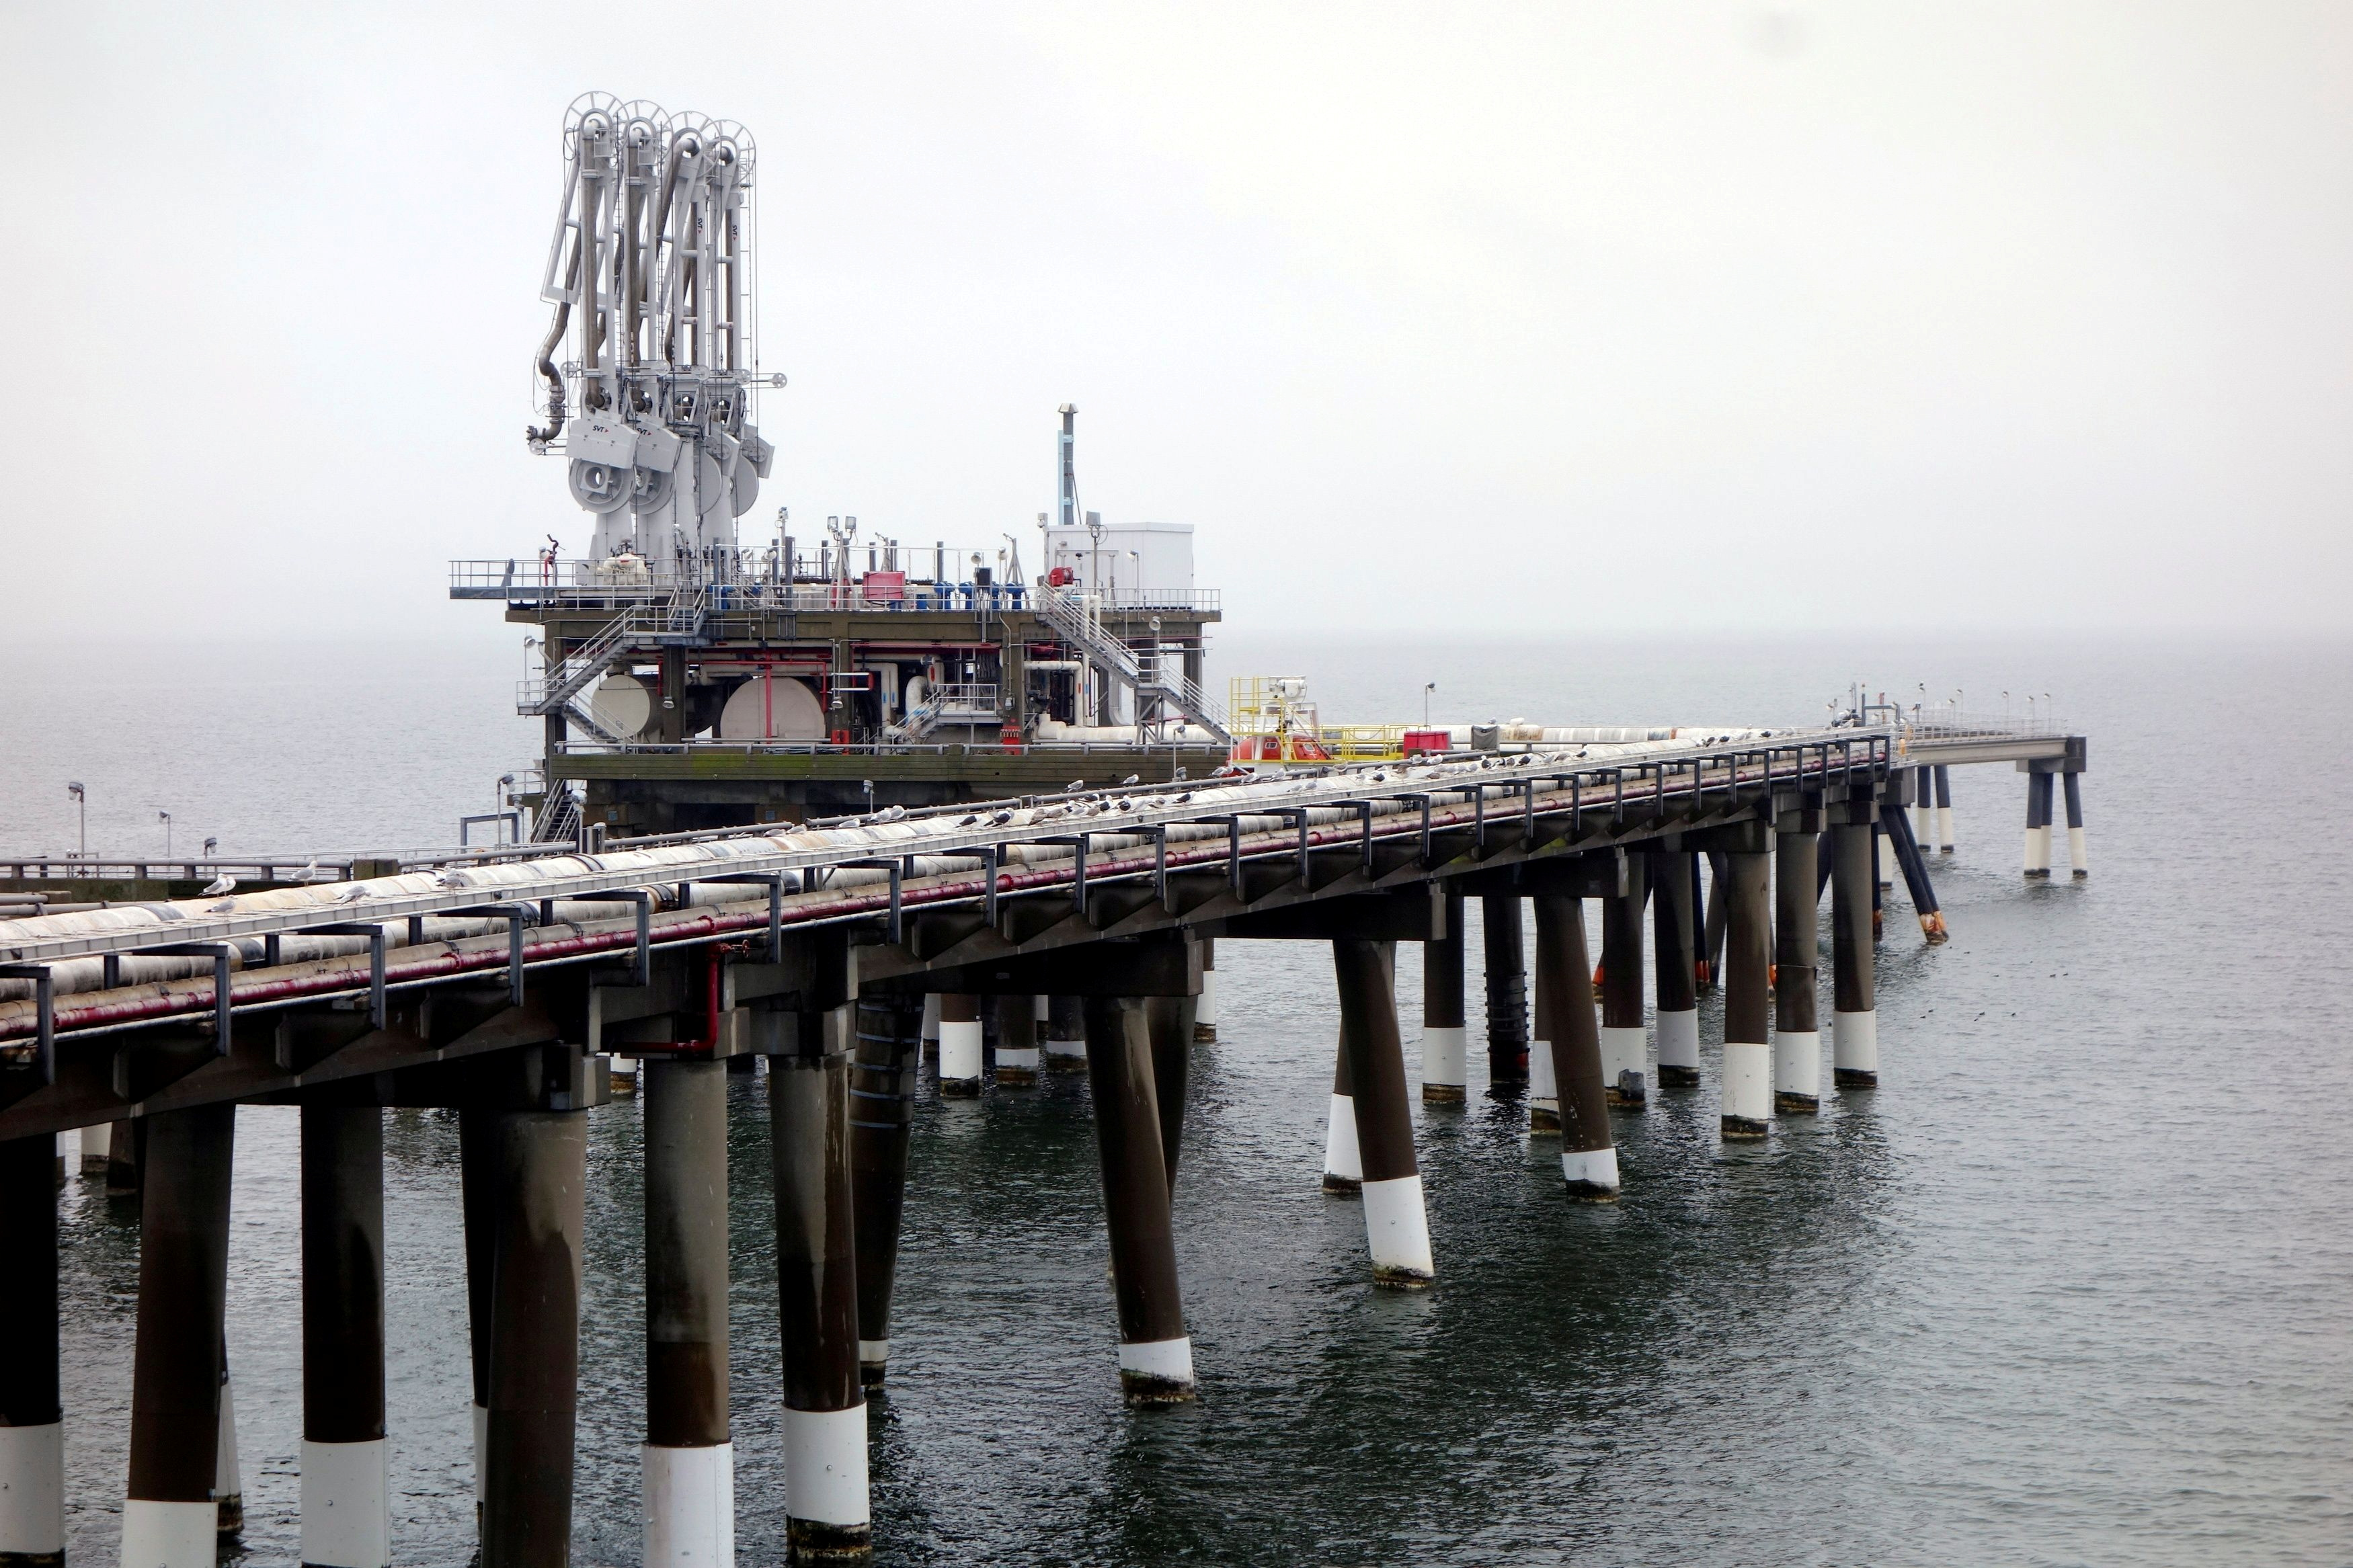 The pier at Dominion's Cove Point liquefied natural gas (LNG) plant on Maryland's Chesapeake Bay is seen in this picture taken February 5, 2014.   REUTERS/Timothy Gardner